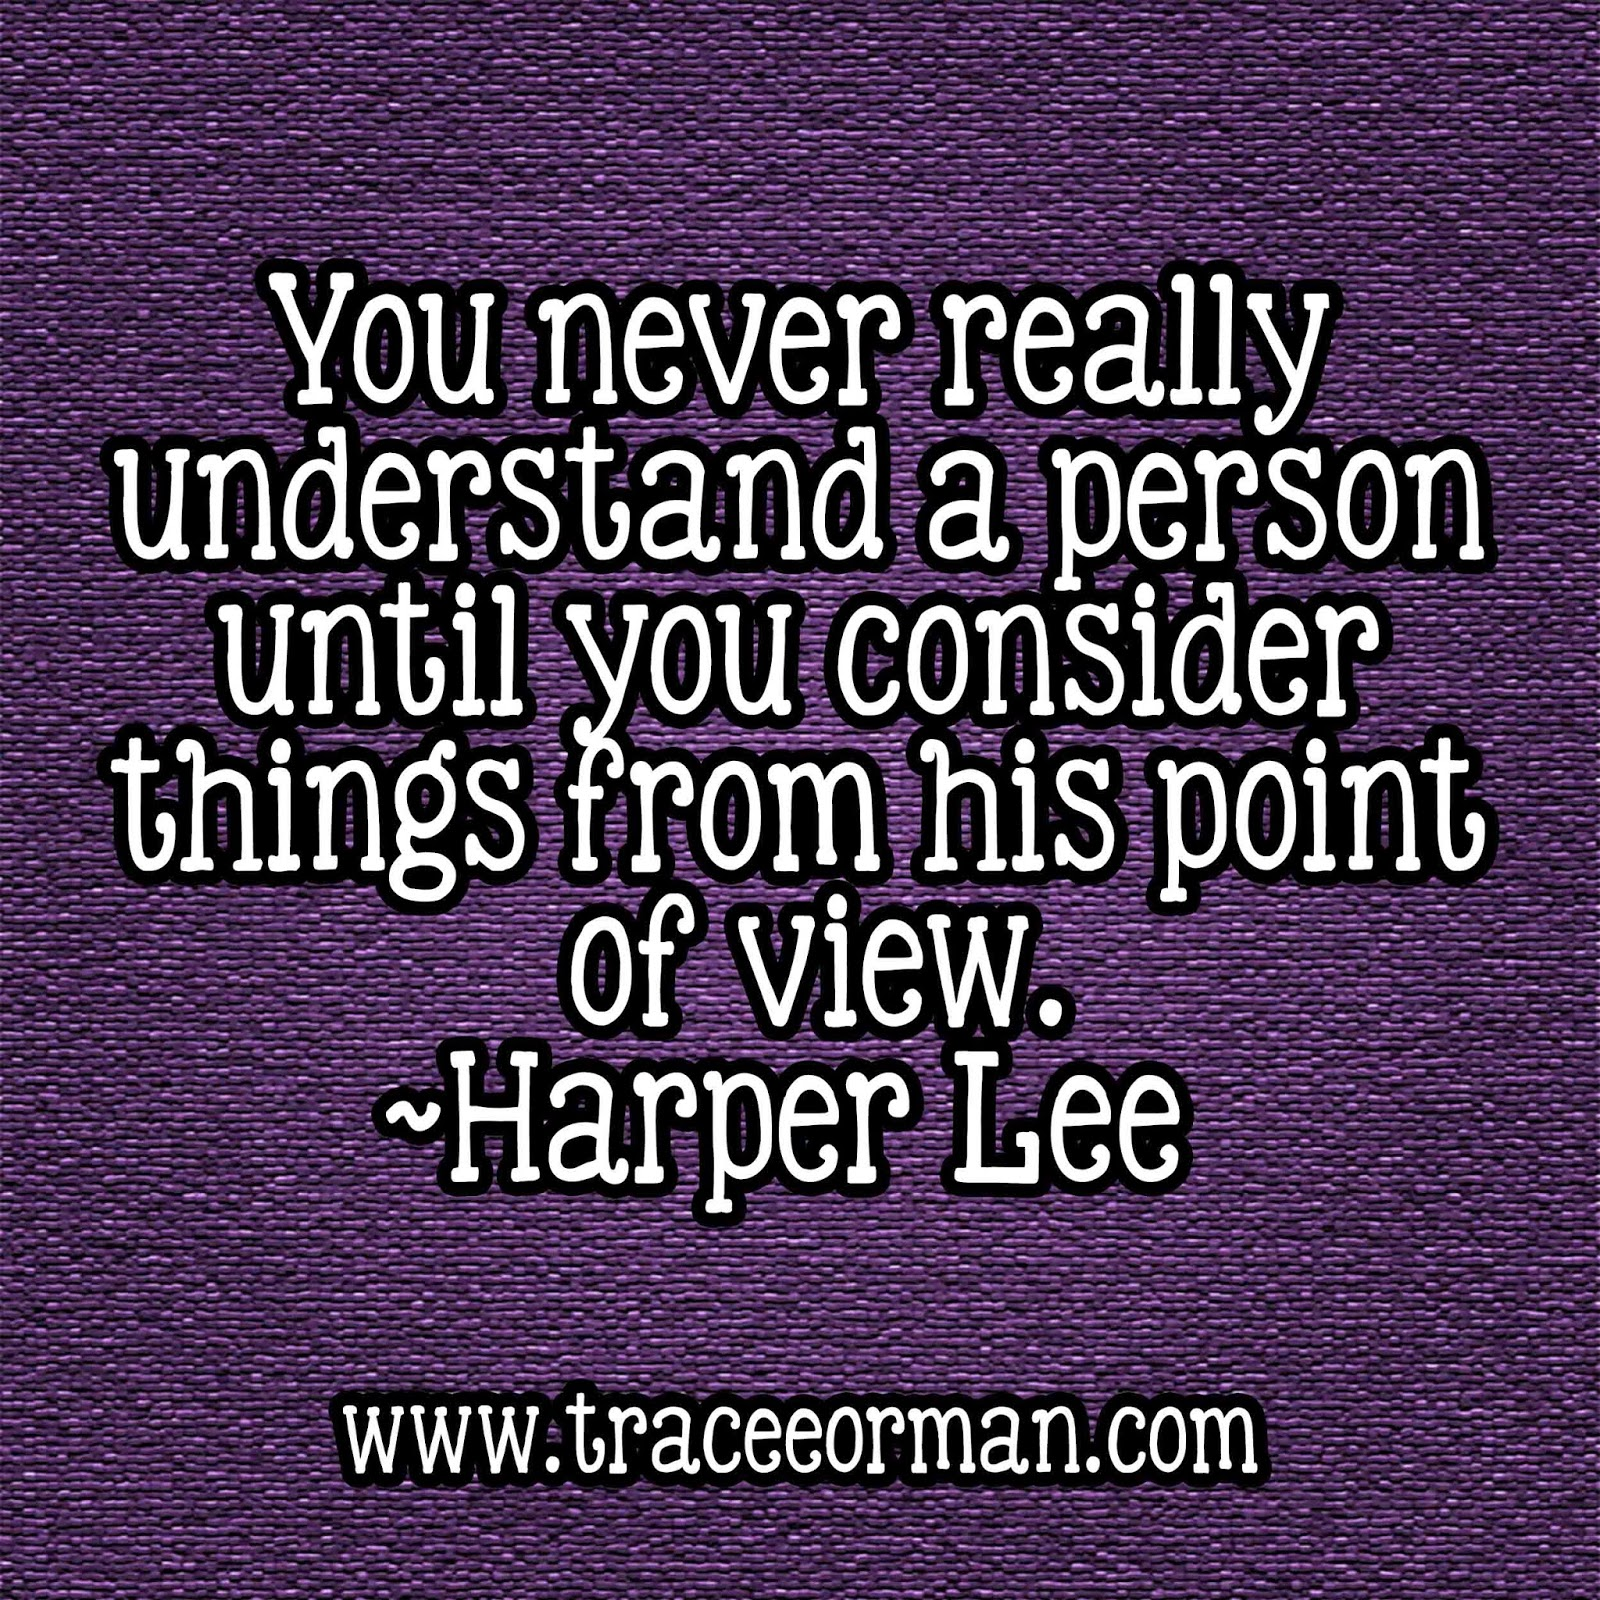 Harper Lee Quotes: Mrs. Orman's Classroom: Harper Lee: The Silent Salute For You